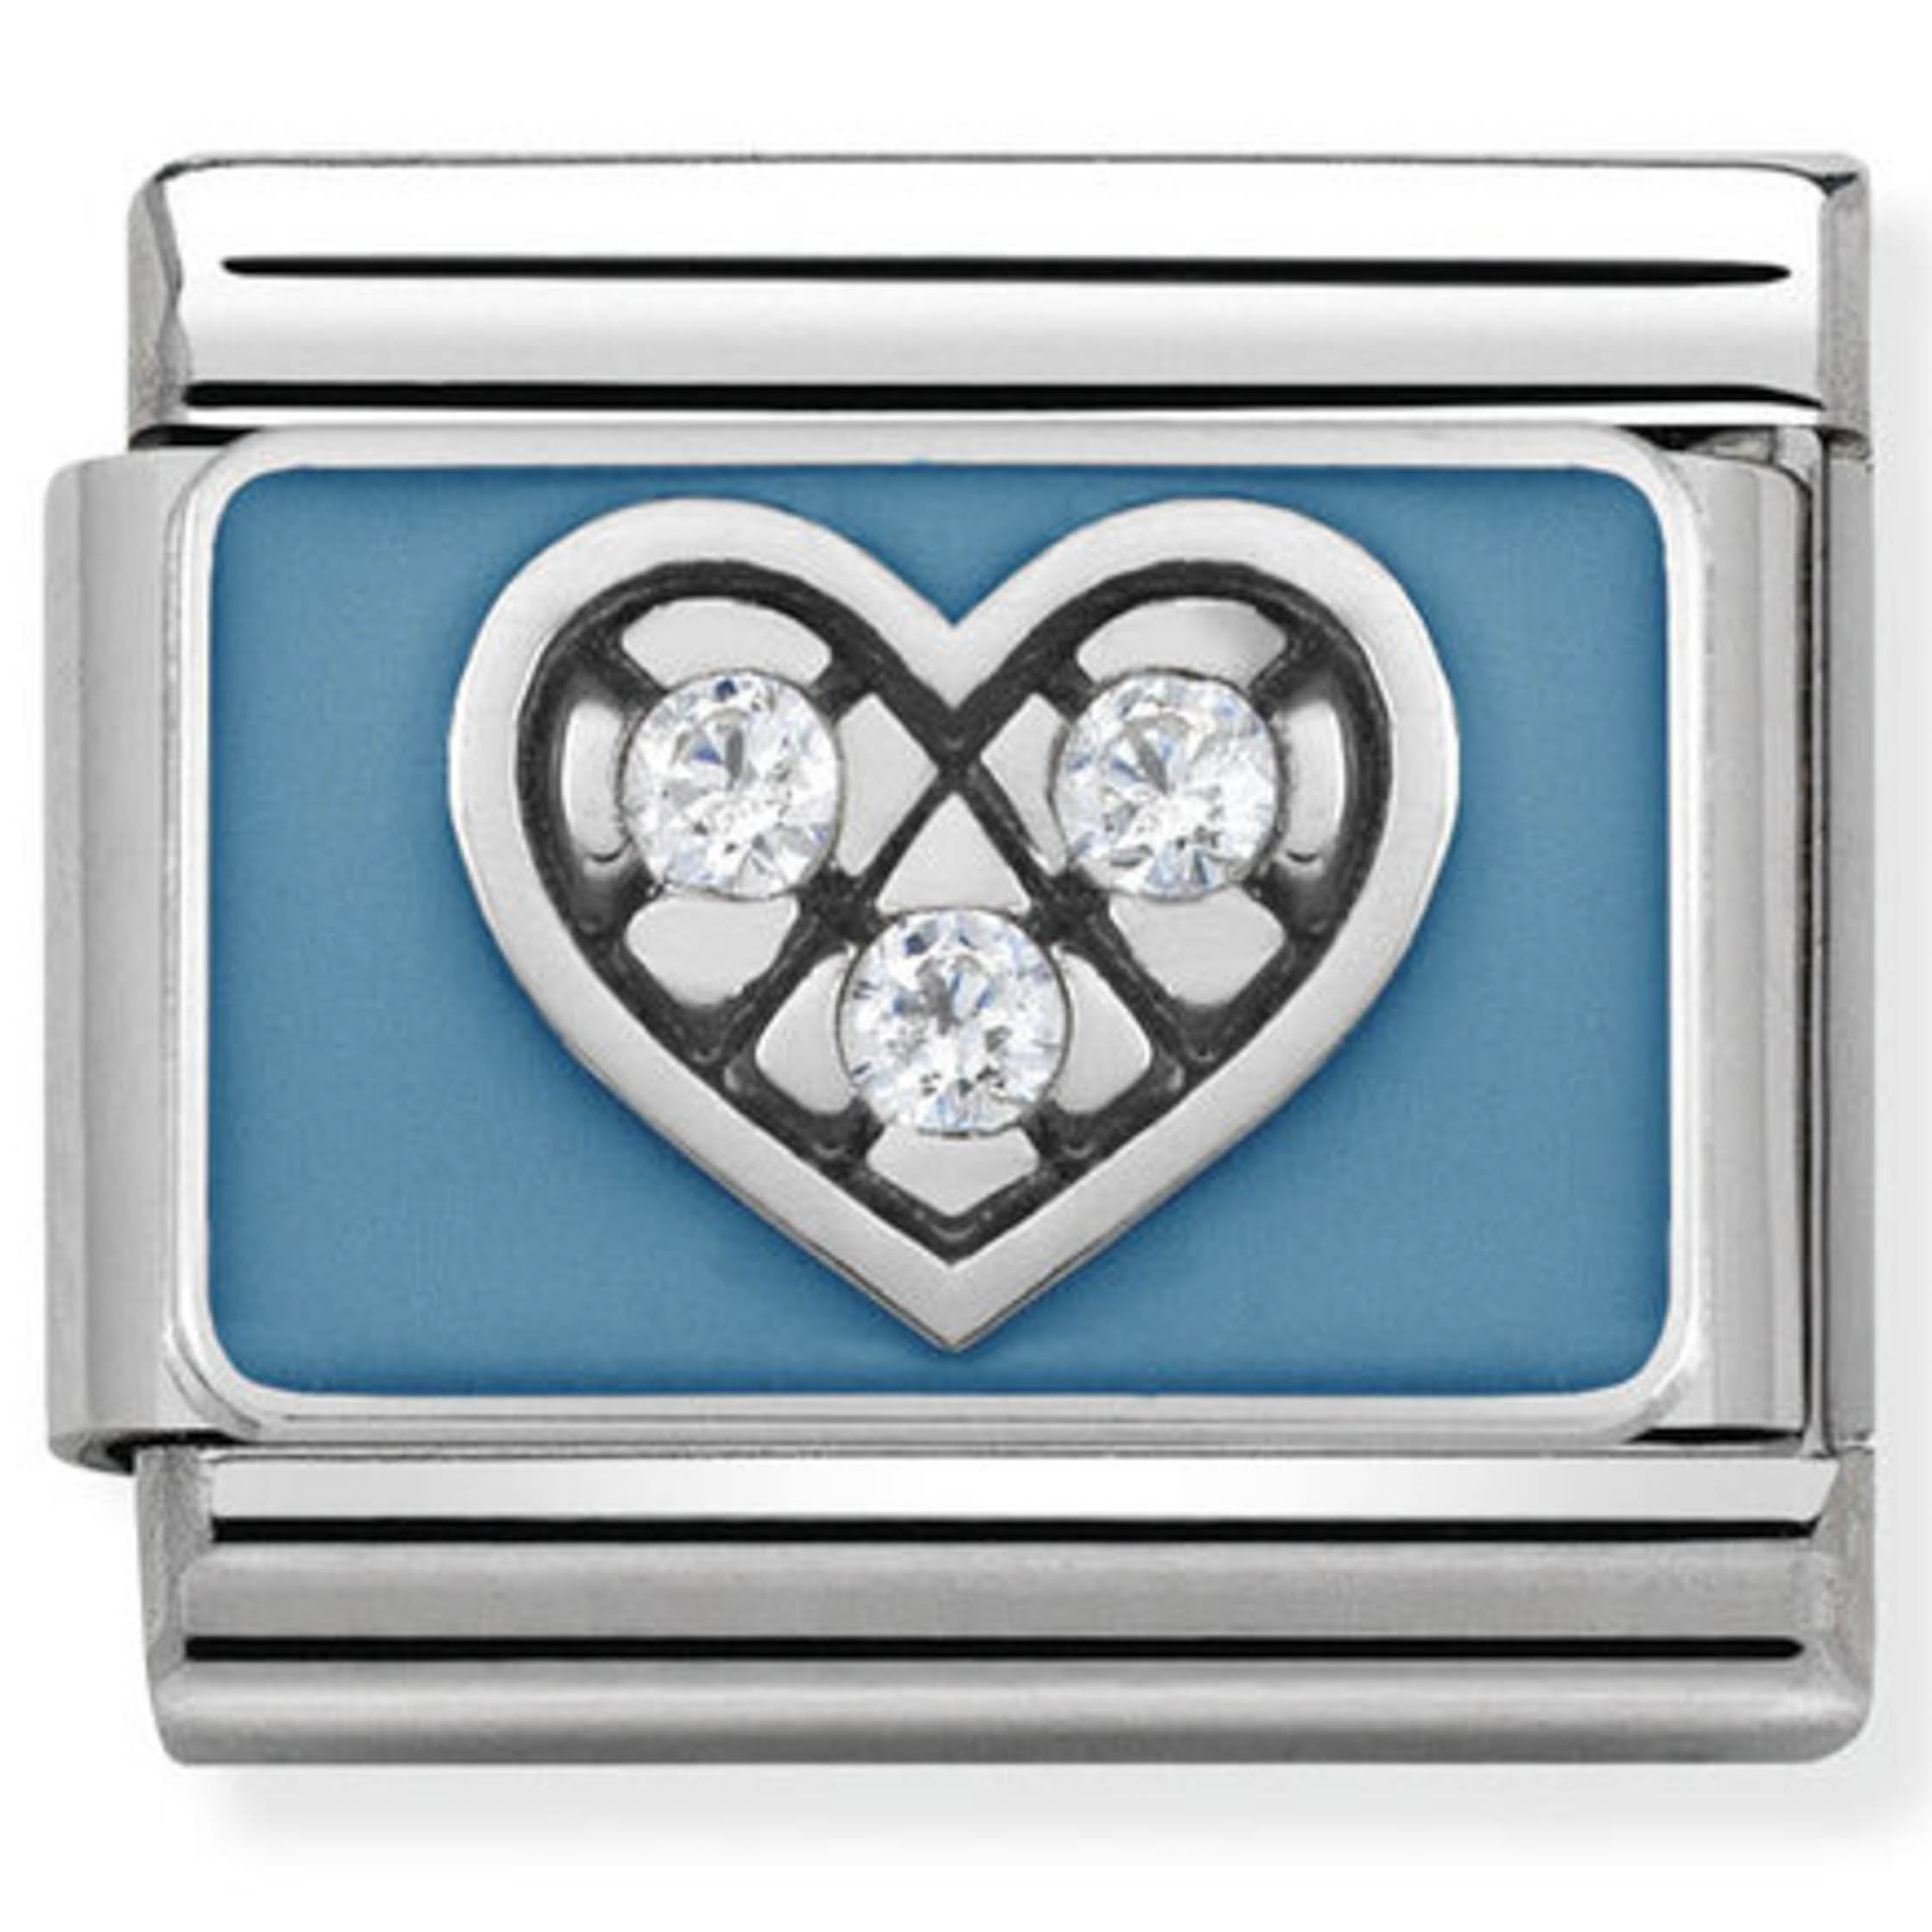 Nomination Silver CZ Heart With Light Blue  5876bade57a5